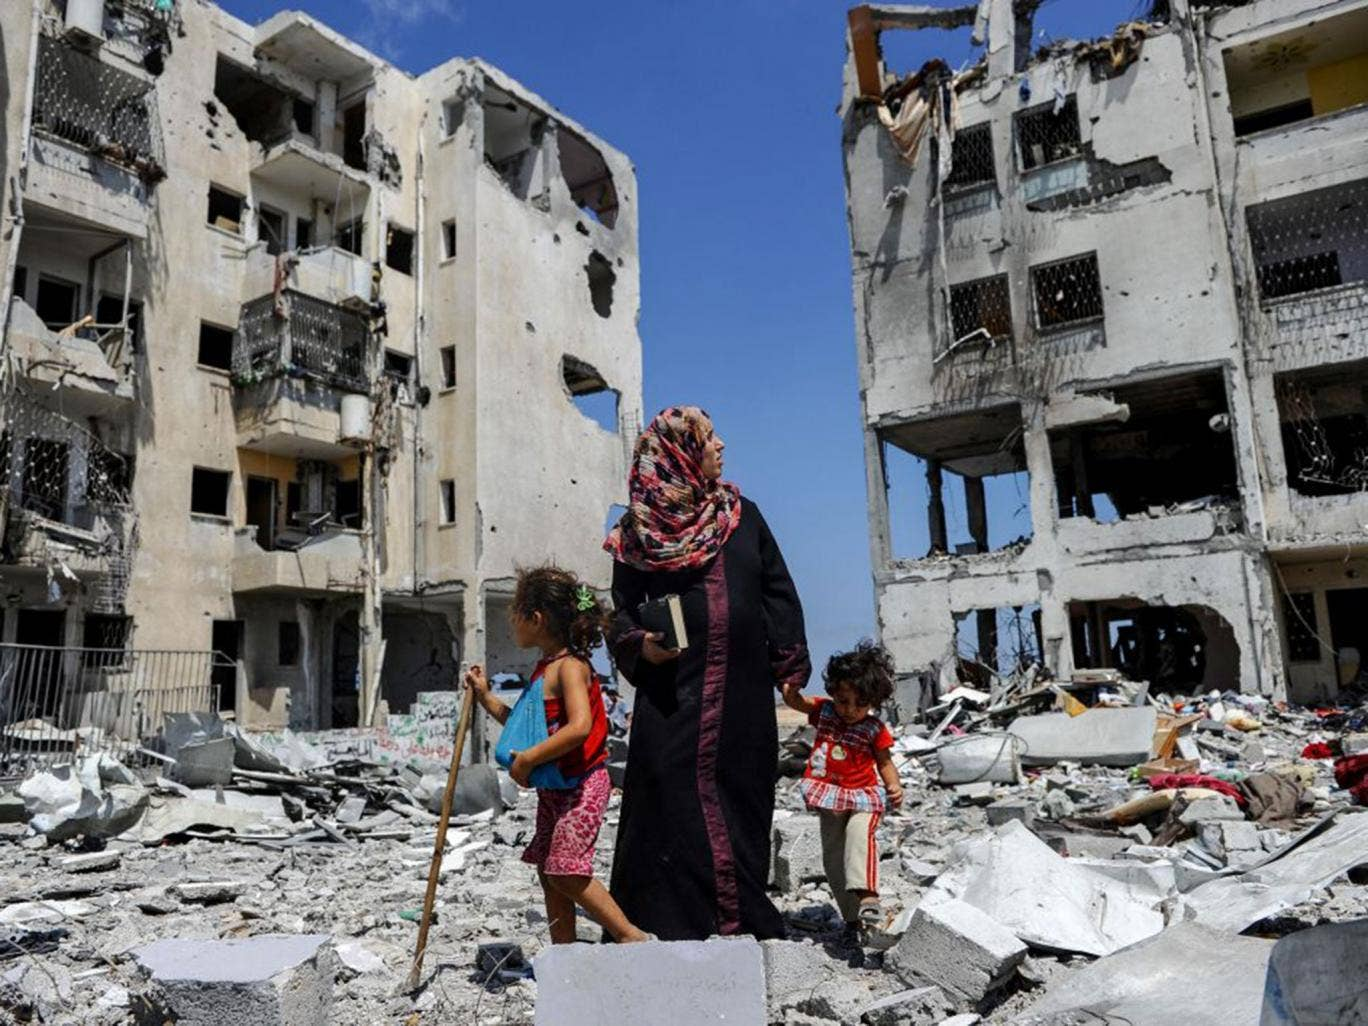 Palestinians sift through the rubble in Beit Lahia, Gaza, in a search for useful belongings